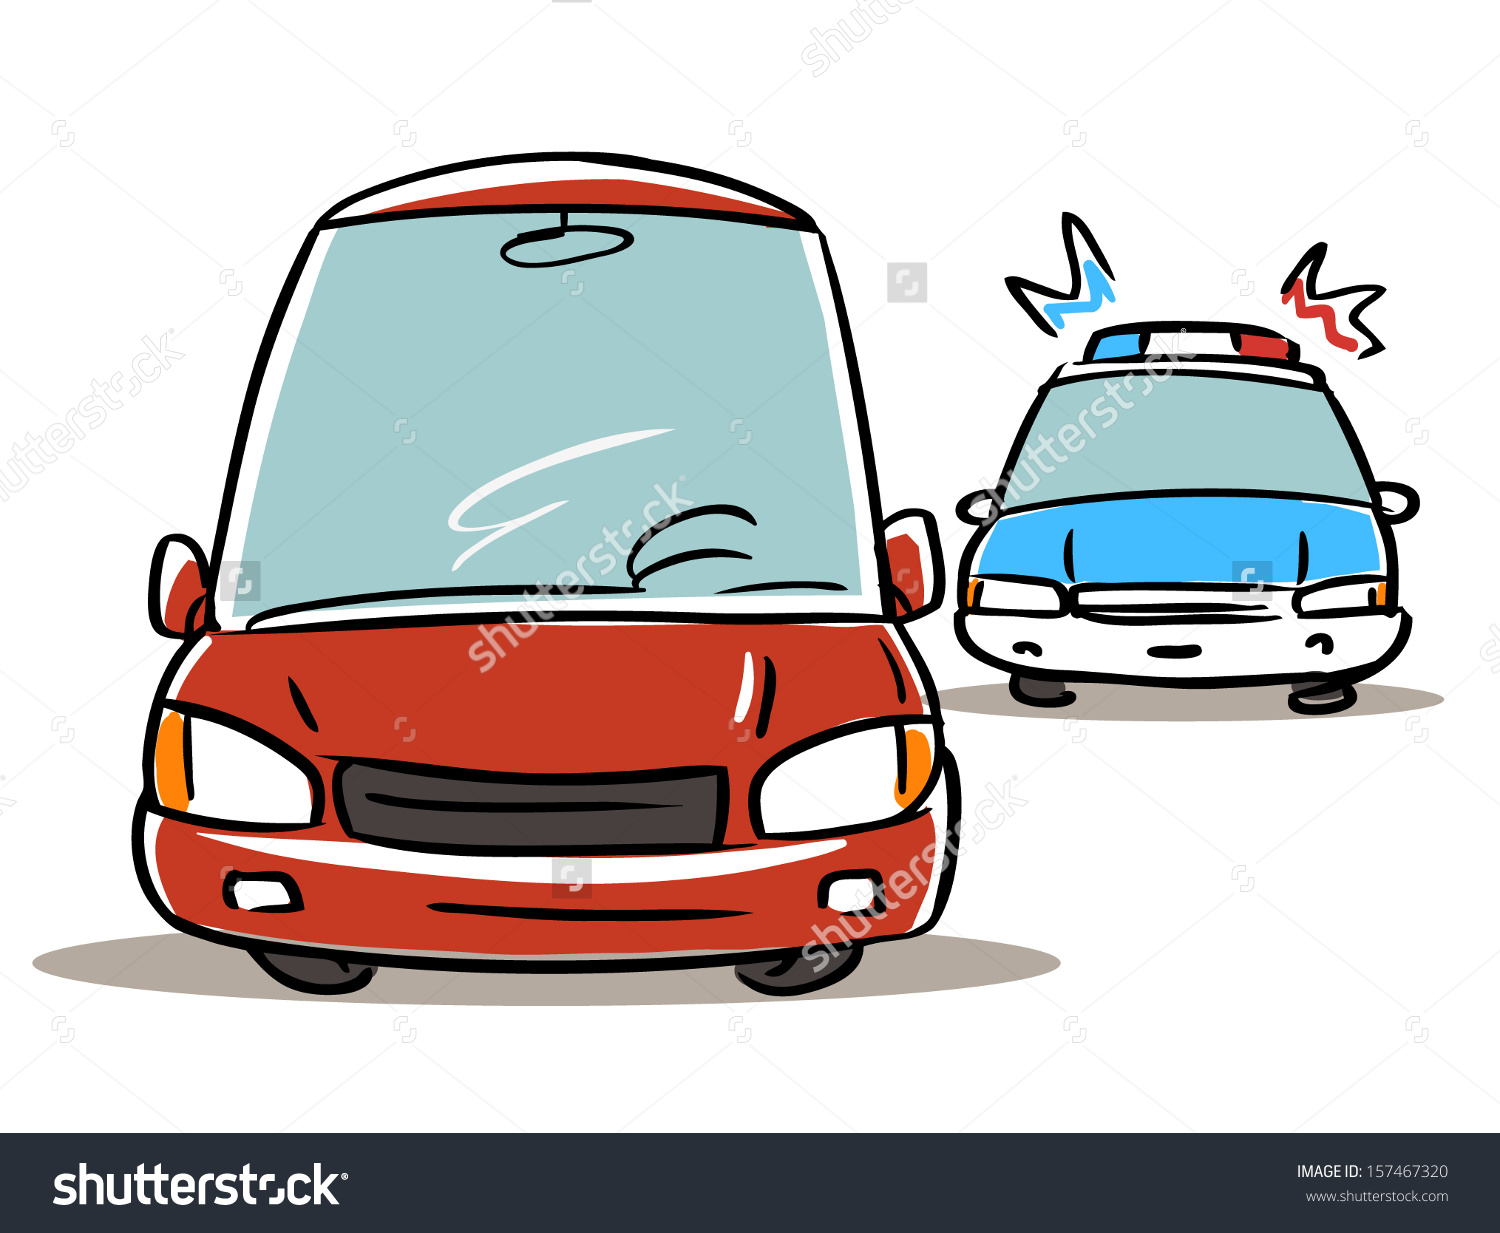 High speed car chase clipart clip art royalty free High speed car chase clipart - ClipartNinja clip art royalty free